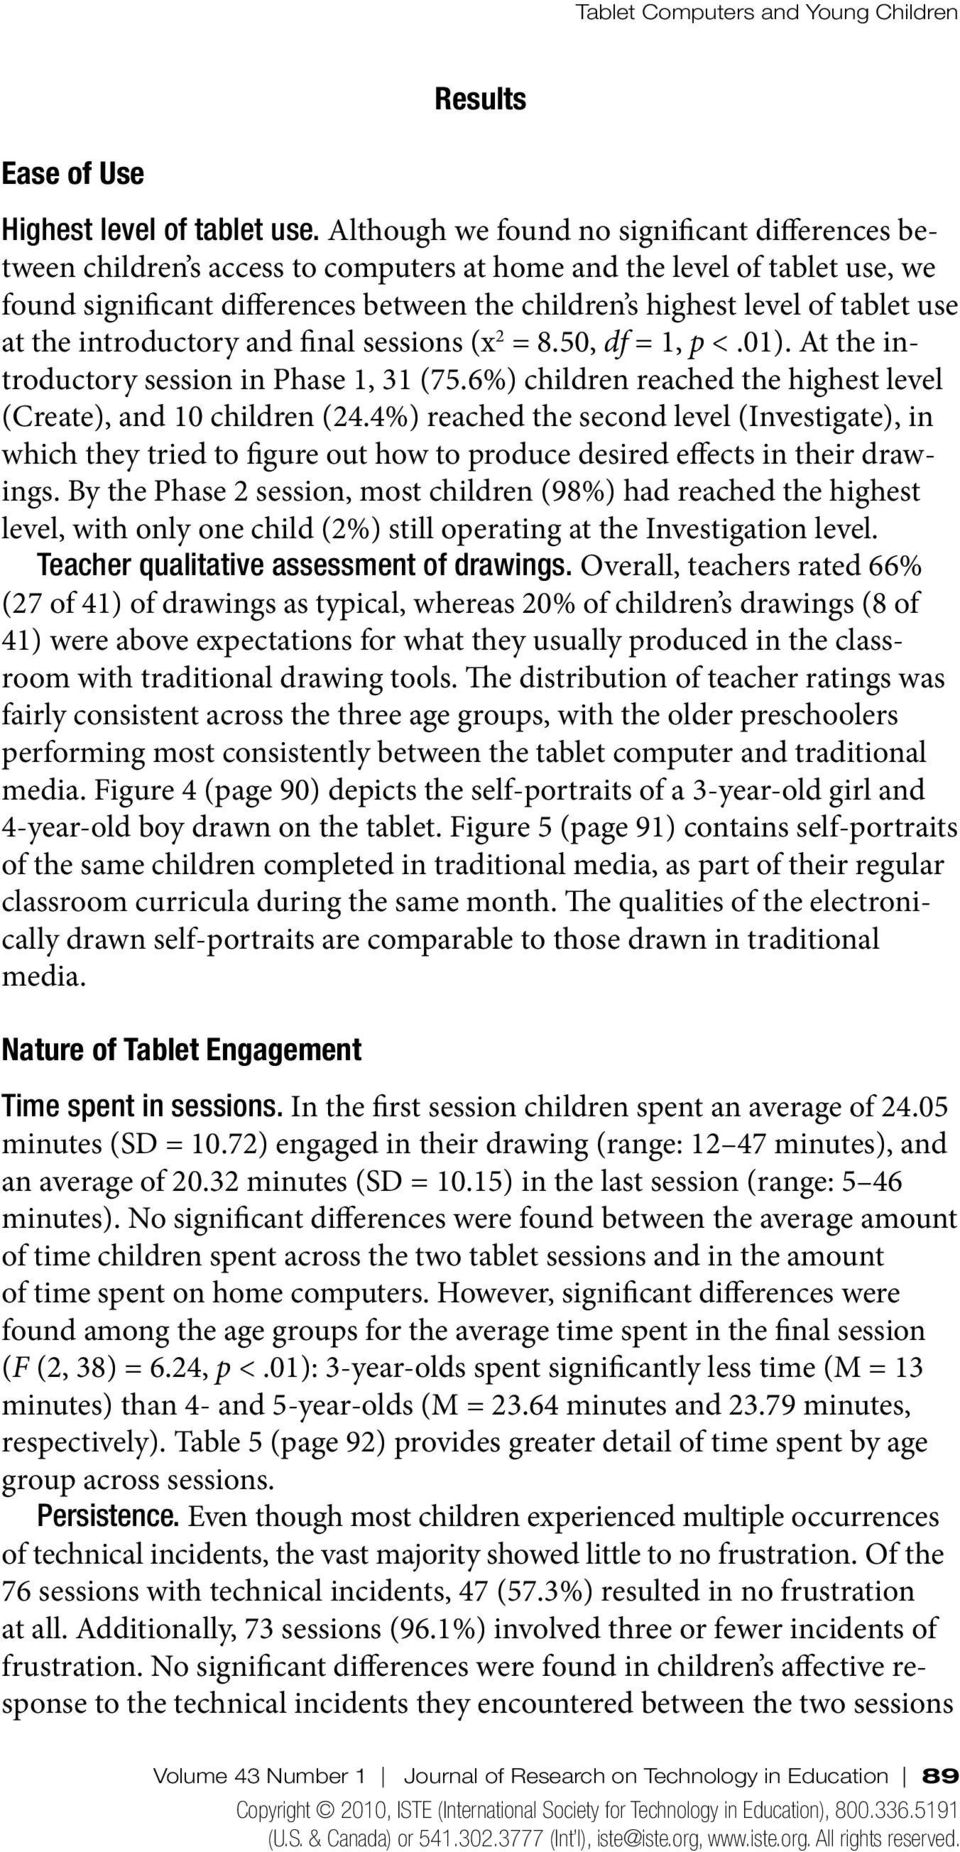 tablet use at the introductory and final sessions (x 2 = 8.50, df = 1, p <.01). At the introductory session in Phase 1, 31 (75.6%) children reached the highest level (Create), and 10 children (24.